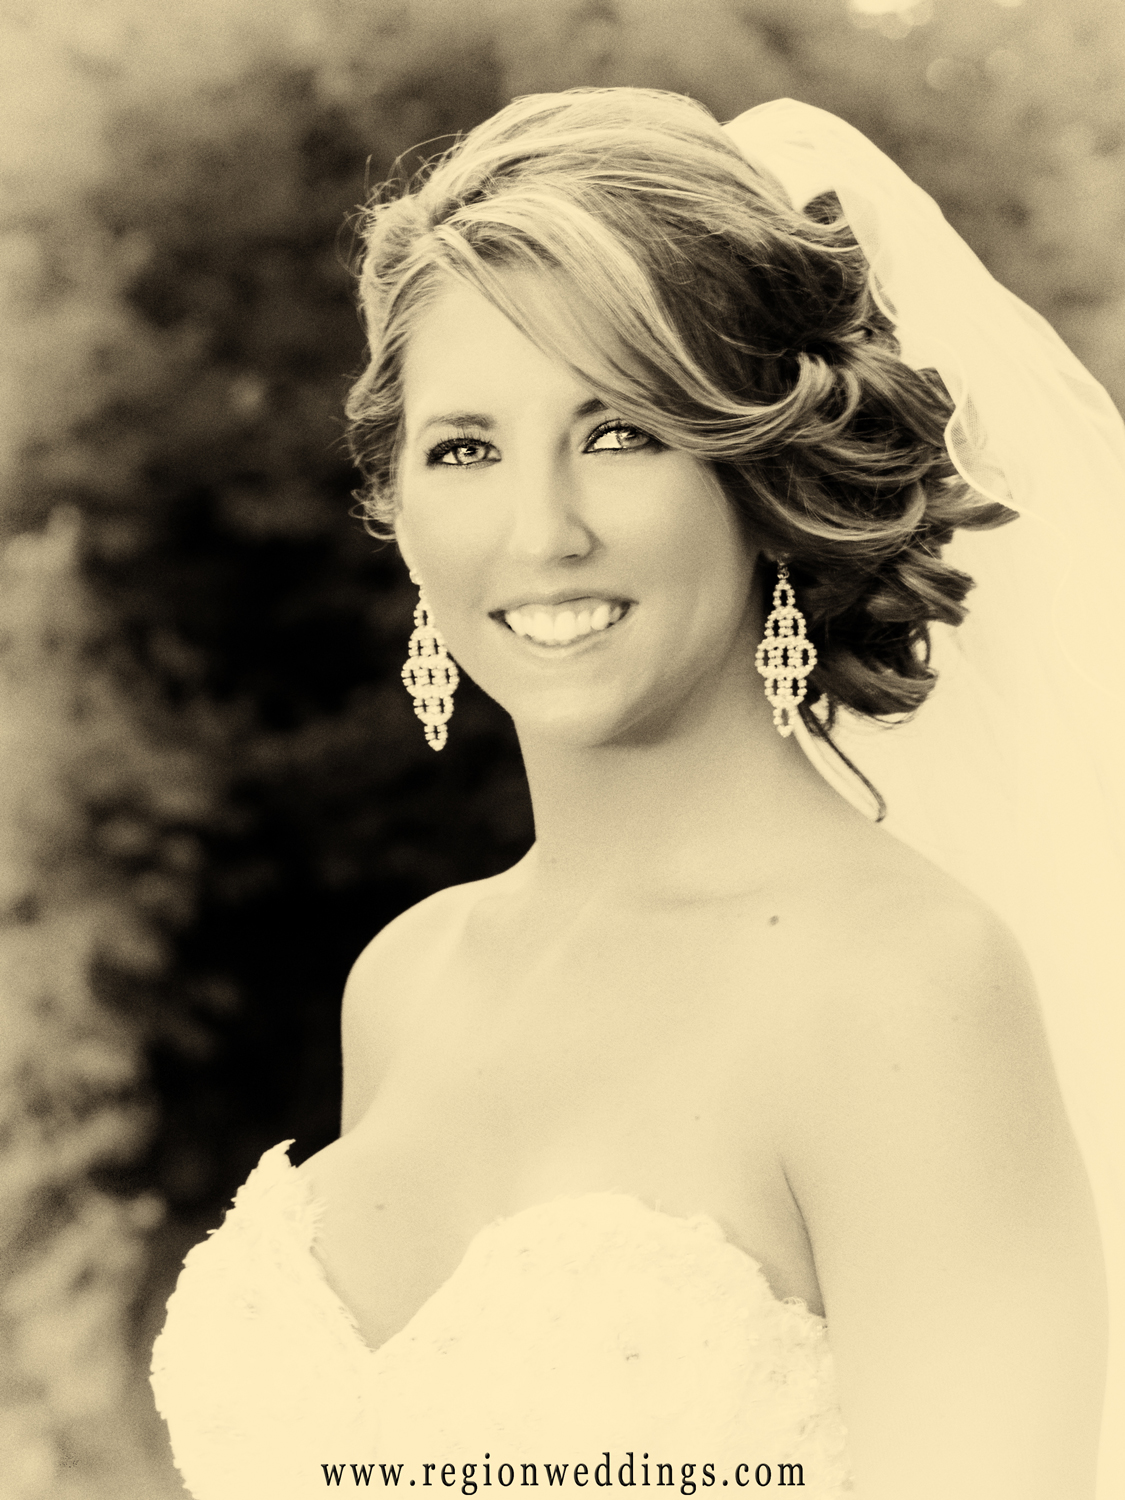 A sepia toned portrait of a bride on her wedding day.